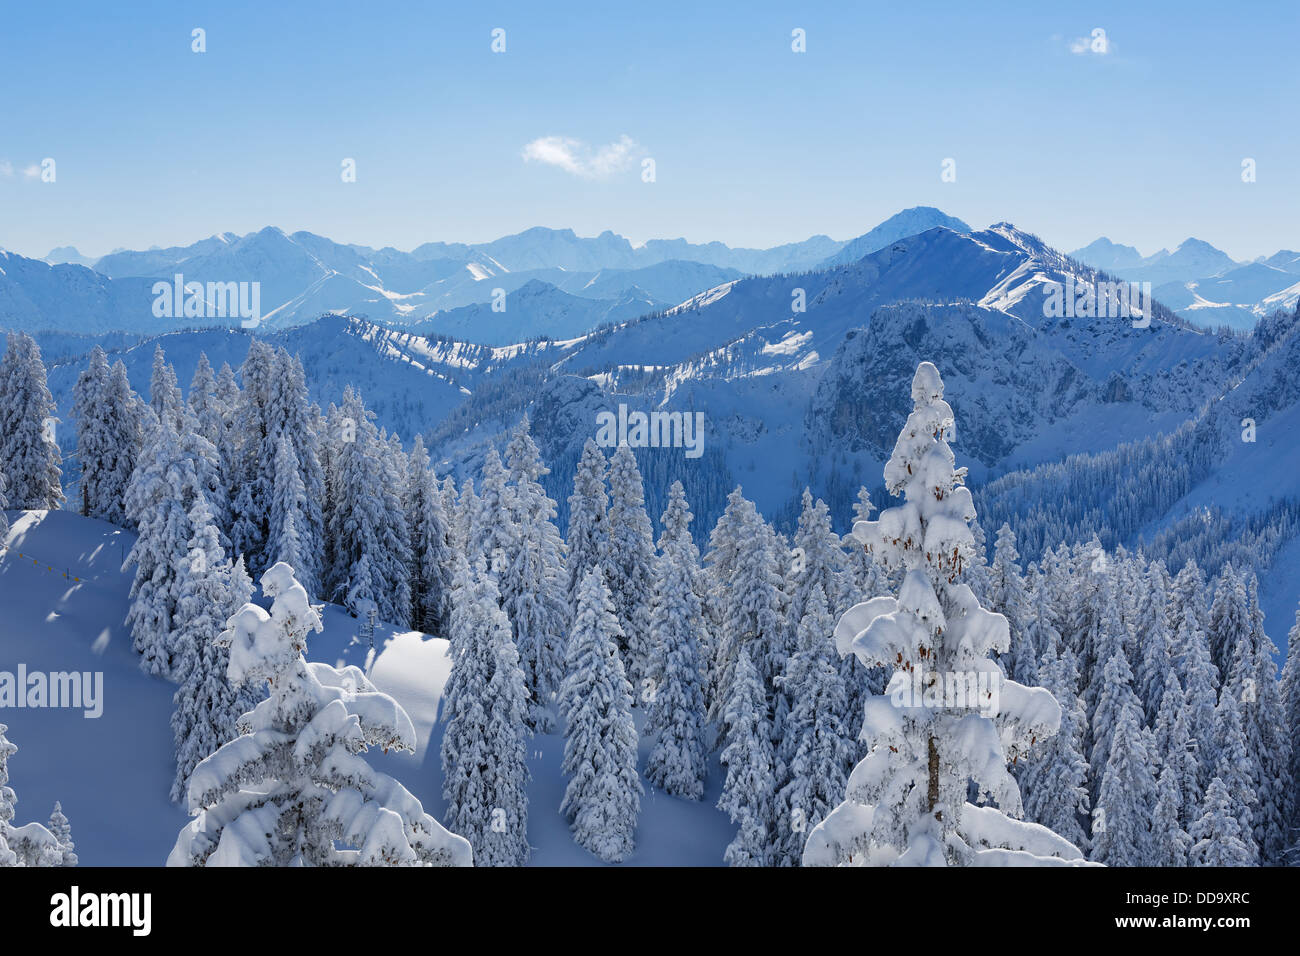 Germany, Bavaria, Snow covered spruces at Tegelberg Mountain - Stock Image